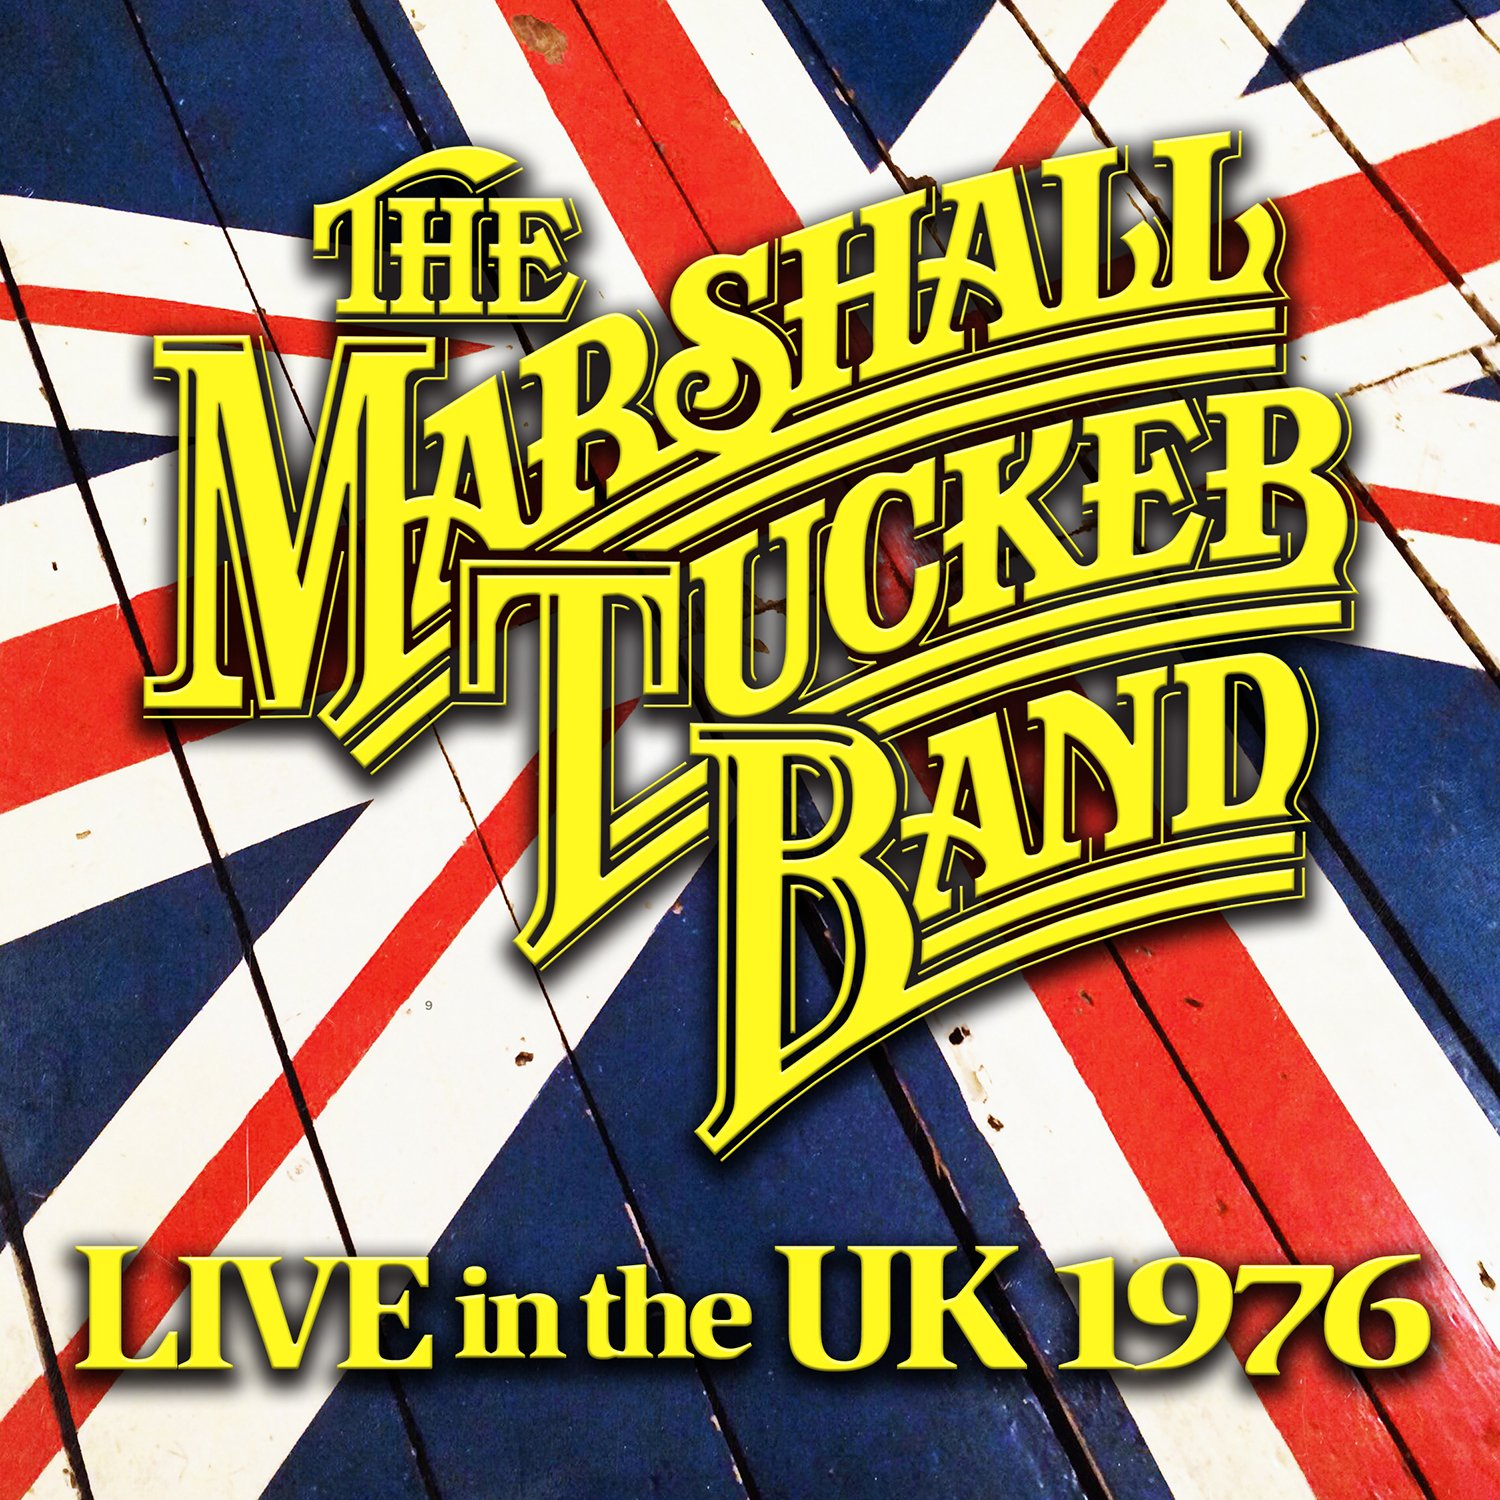 THE MARSHALL TUCKER BAND Live In The UK 1976